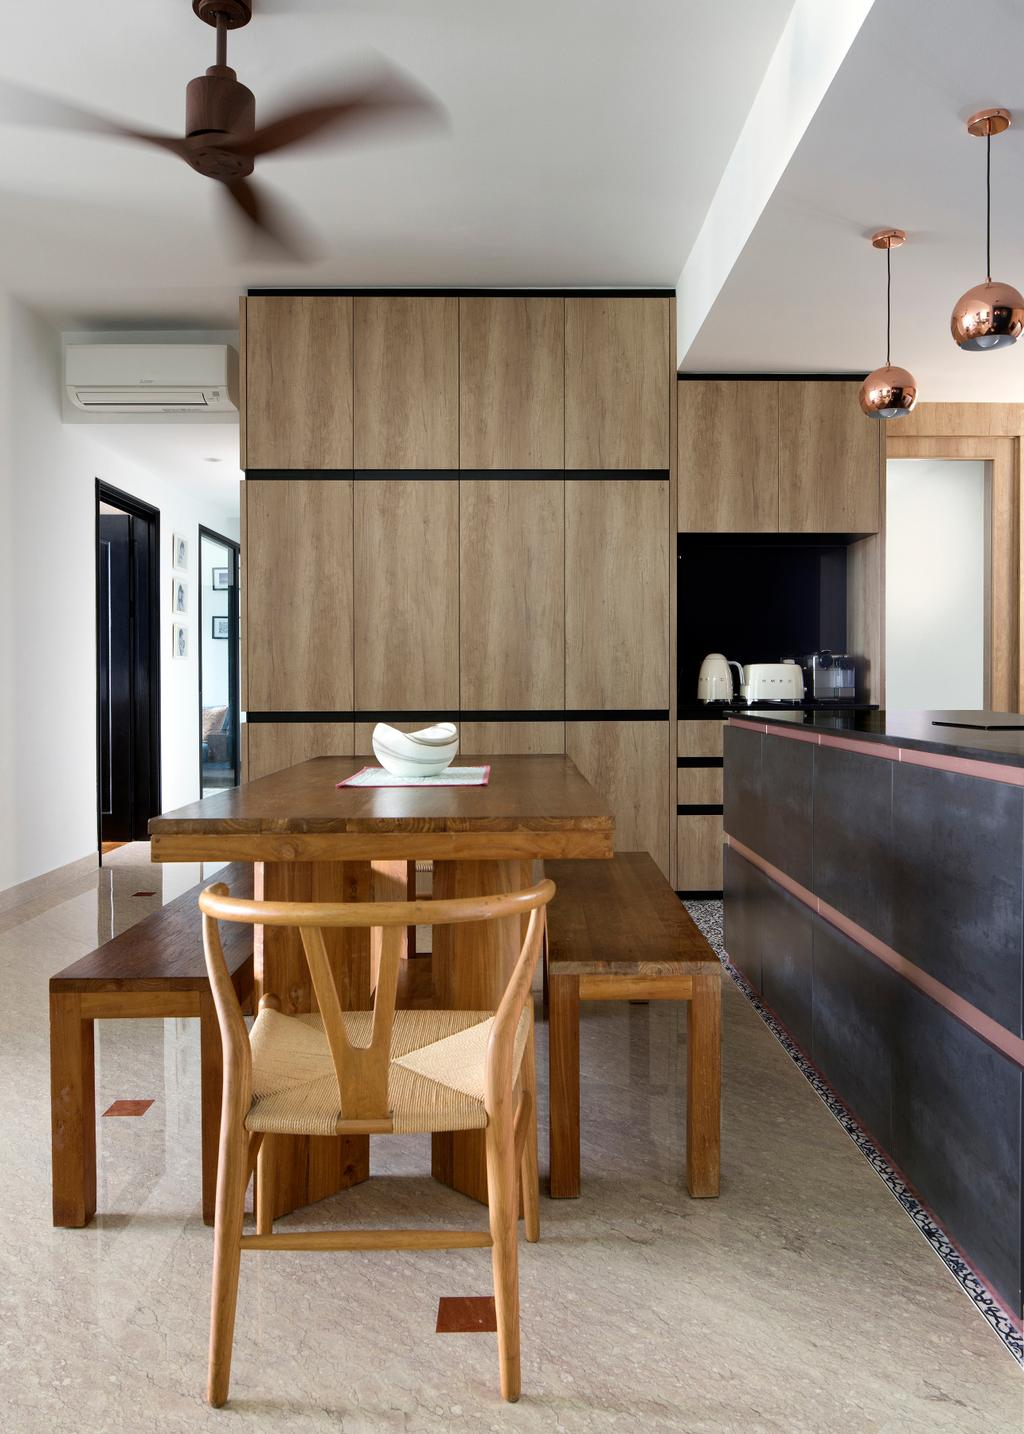 Eclectic, Condo, Dining Room, Spring Grove, Interior Designer, The Scientist, Indoors, Interior Design, Kitchen, Room, Dining Table, Furniture, Table, Chair, Plywood, Wood